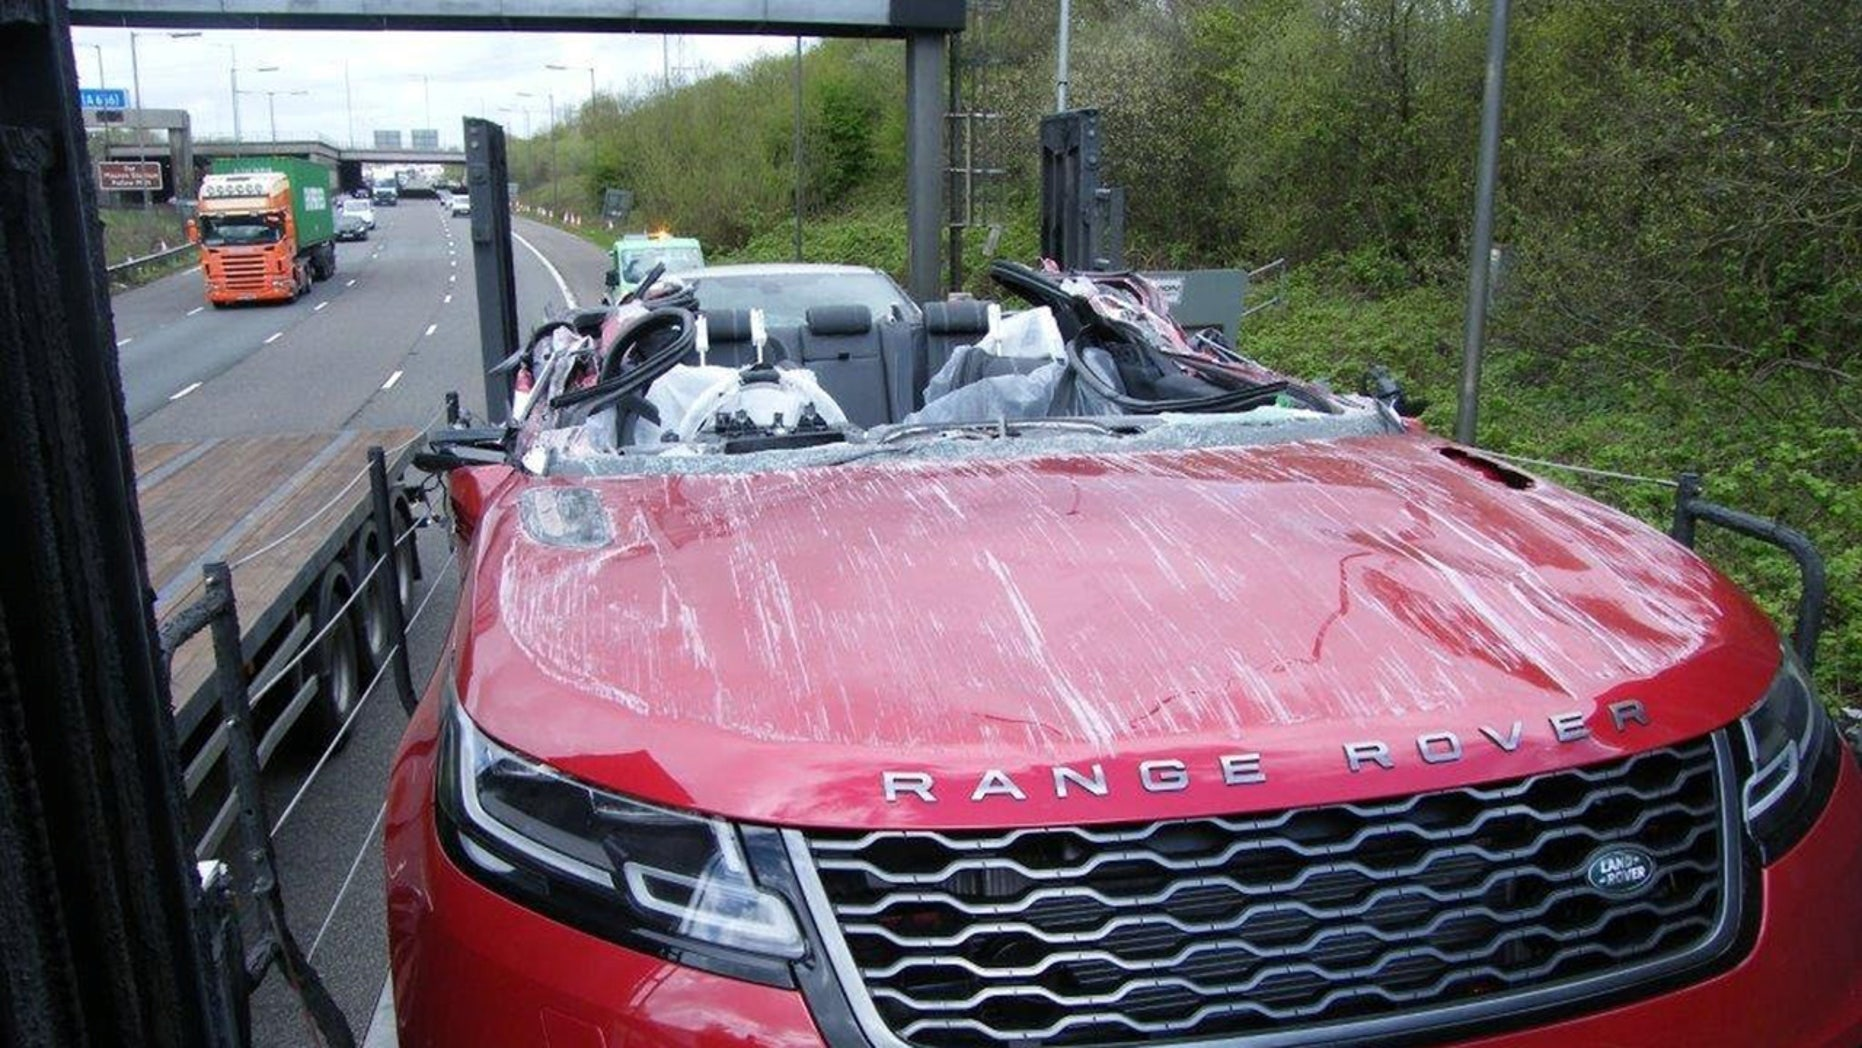 This is what happened when a car transporter collided with a motorway bridge - and accidentally turned a brand new Range Rover into a convertible. See SWNS story SWOOPS; The driver forgot to lower the top deck before travelling along the M61, police said. Fortunately nobody was hurt, but the brand new red car lost its windscreen and windows. But photos show the rest of the car - including the seats, steering wheel and door - remained intact, following the crash near Farnworth, Greater Manchester.